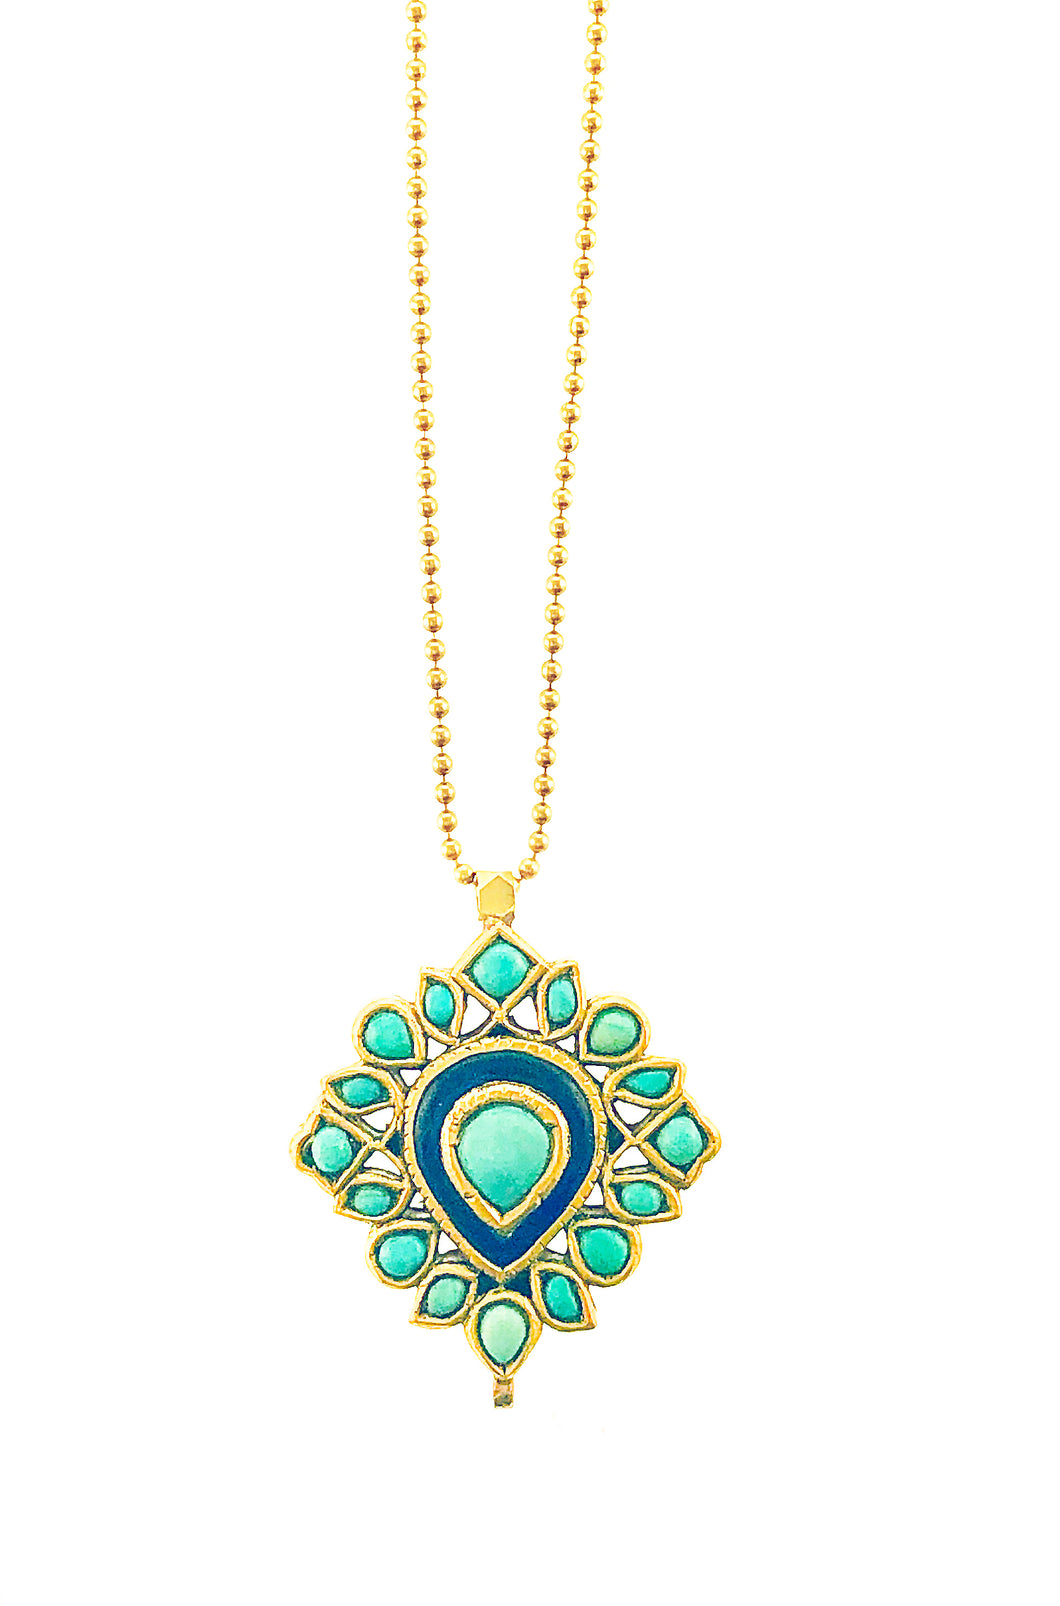 Antique 22K Gold Turquoise and inlaid Sapphire Pendant on Ballbead Chain